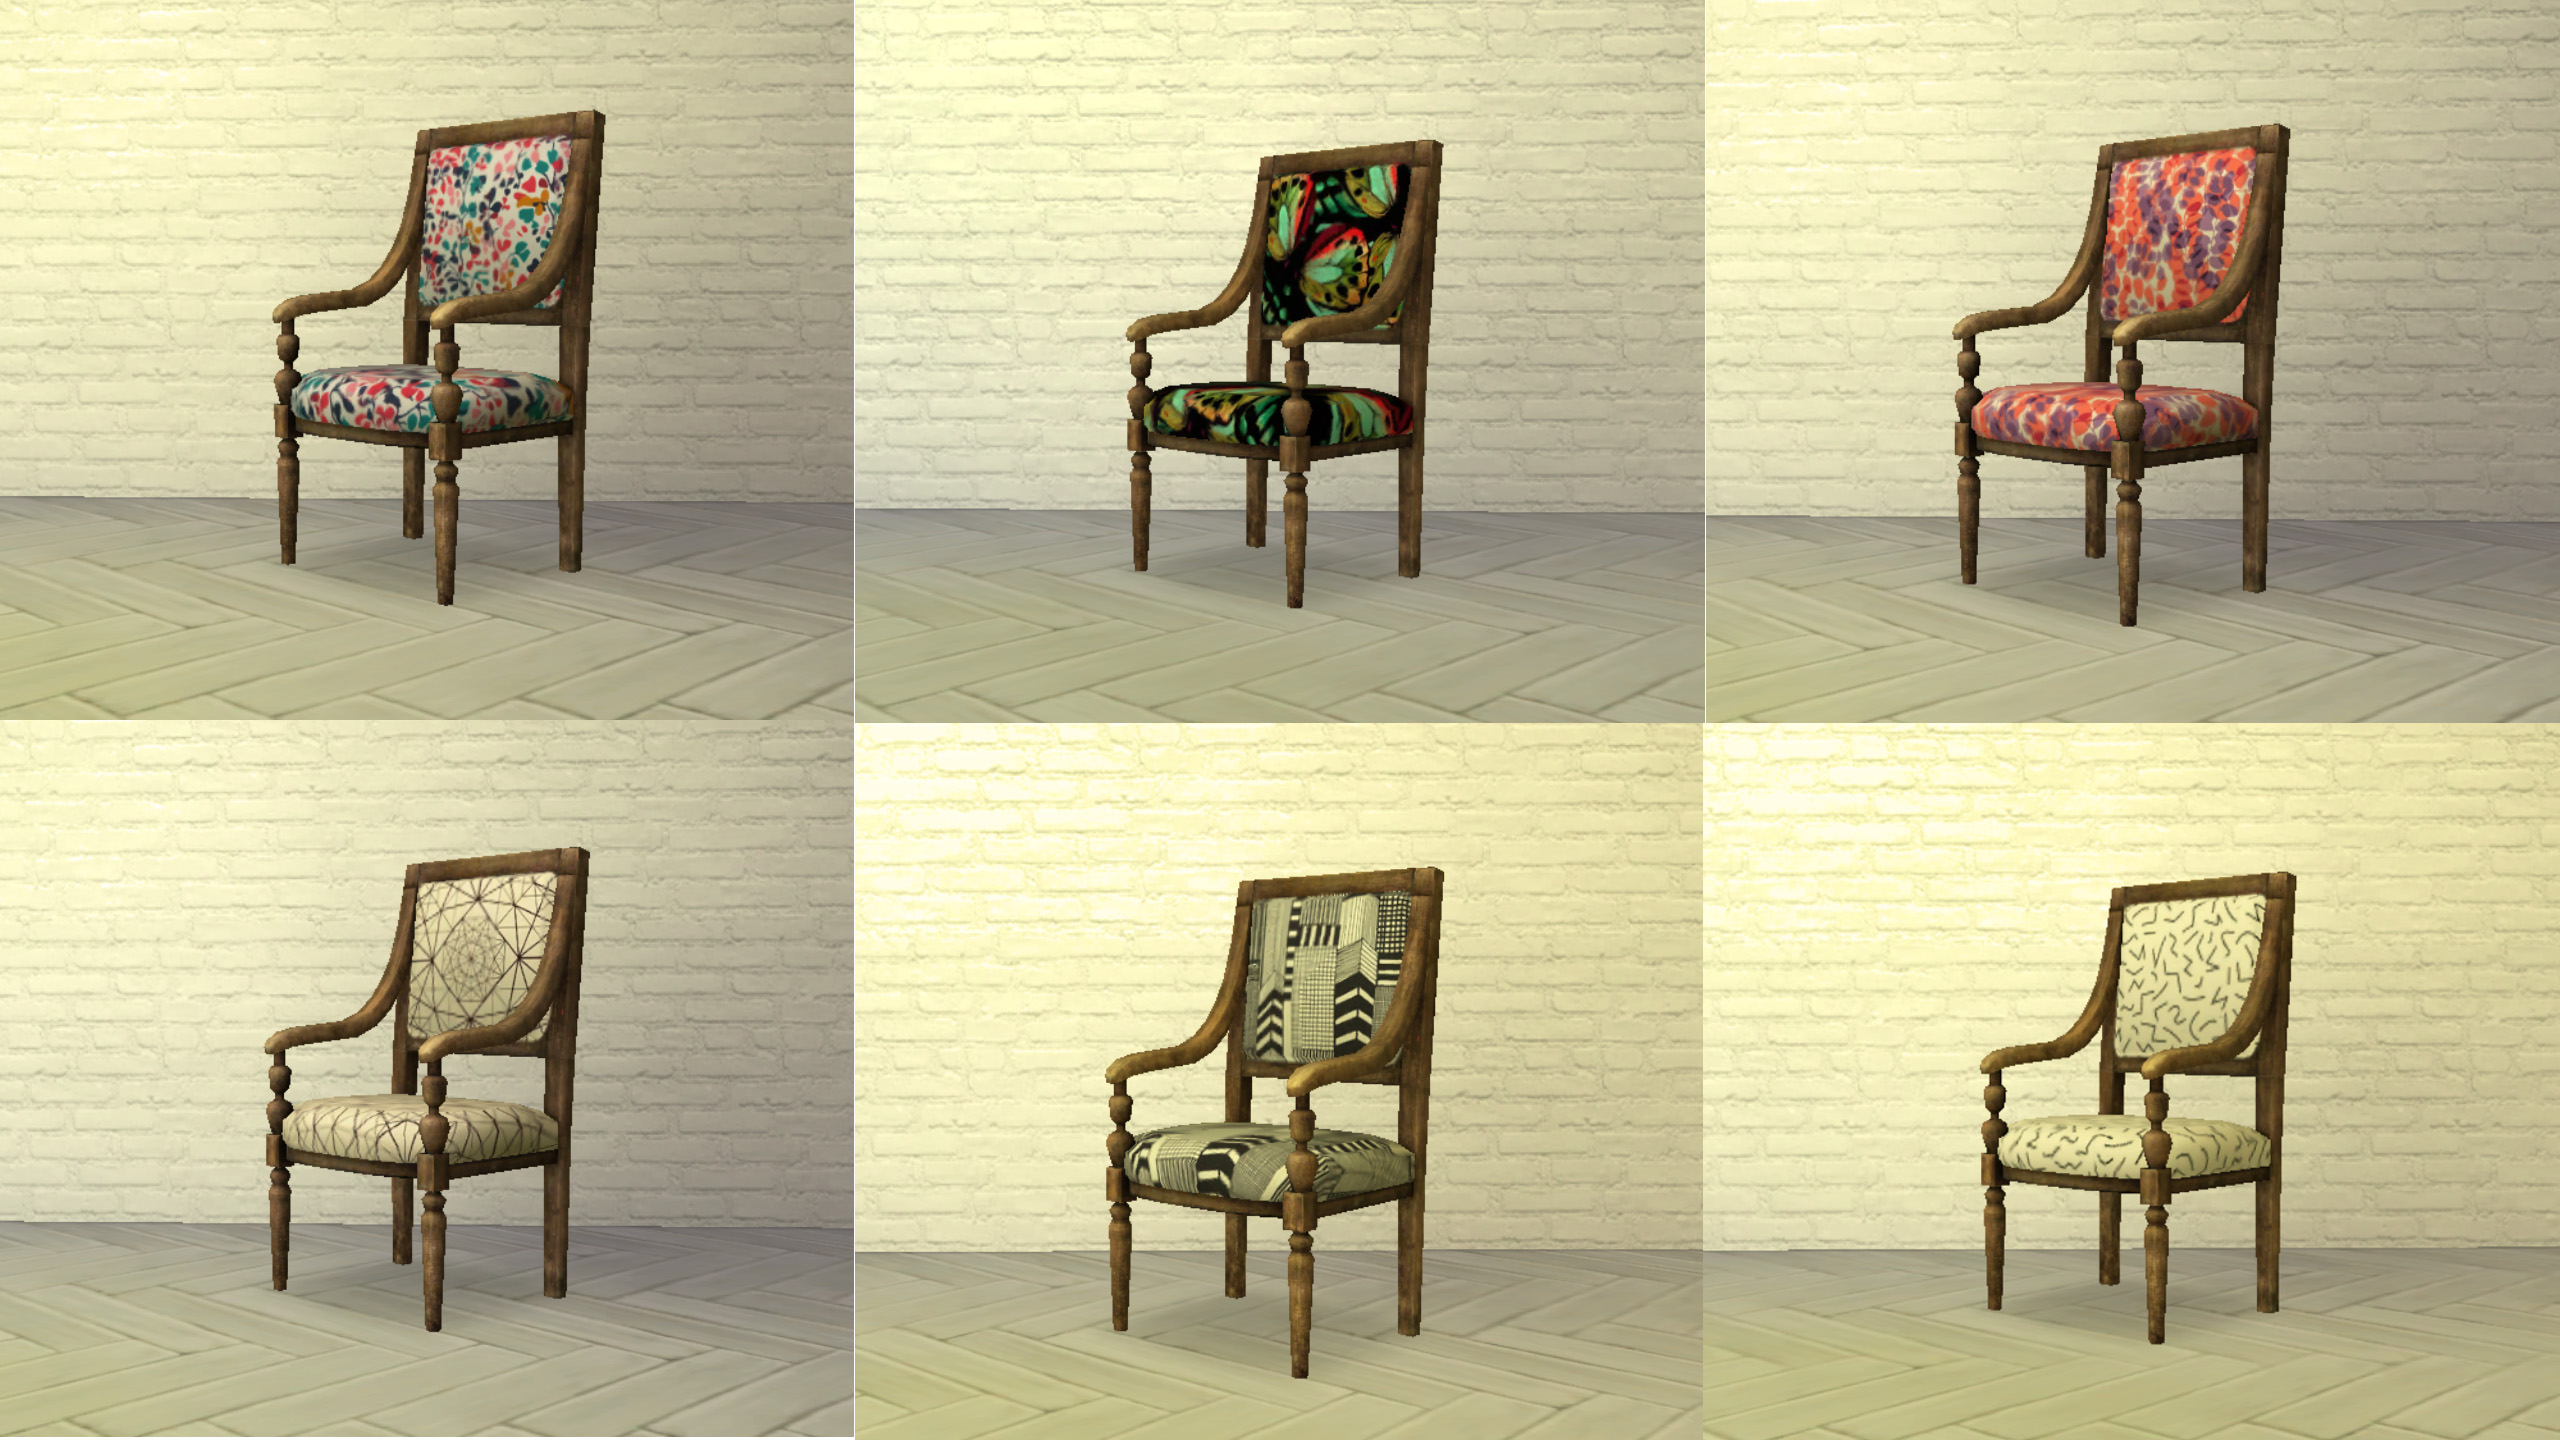 Hotels v2 7 for sims 4 for Chair 9 hotel